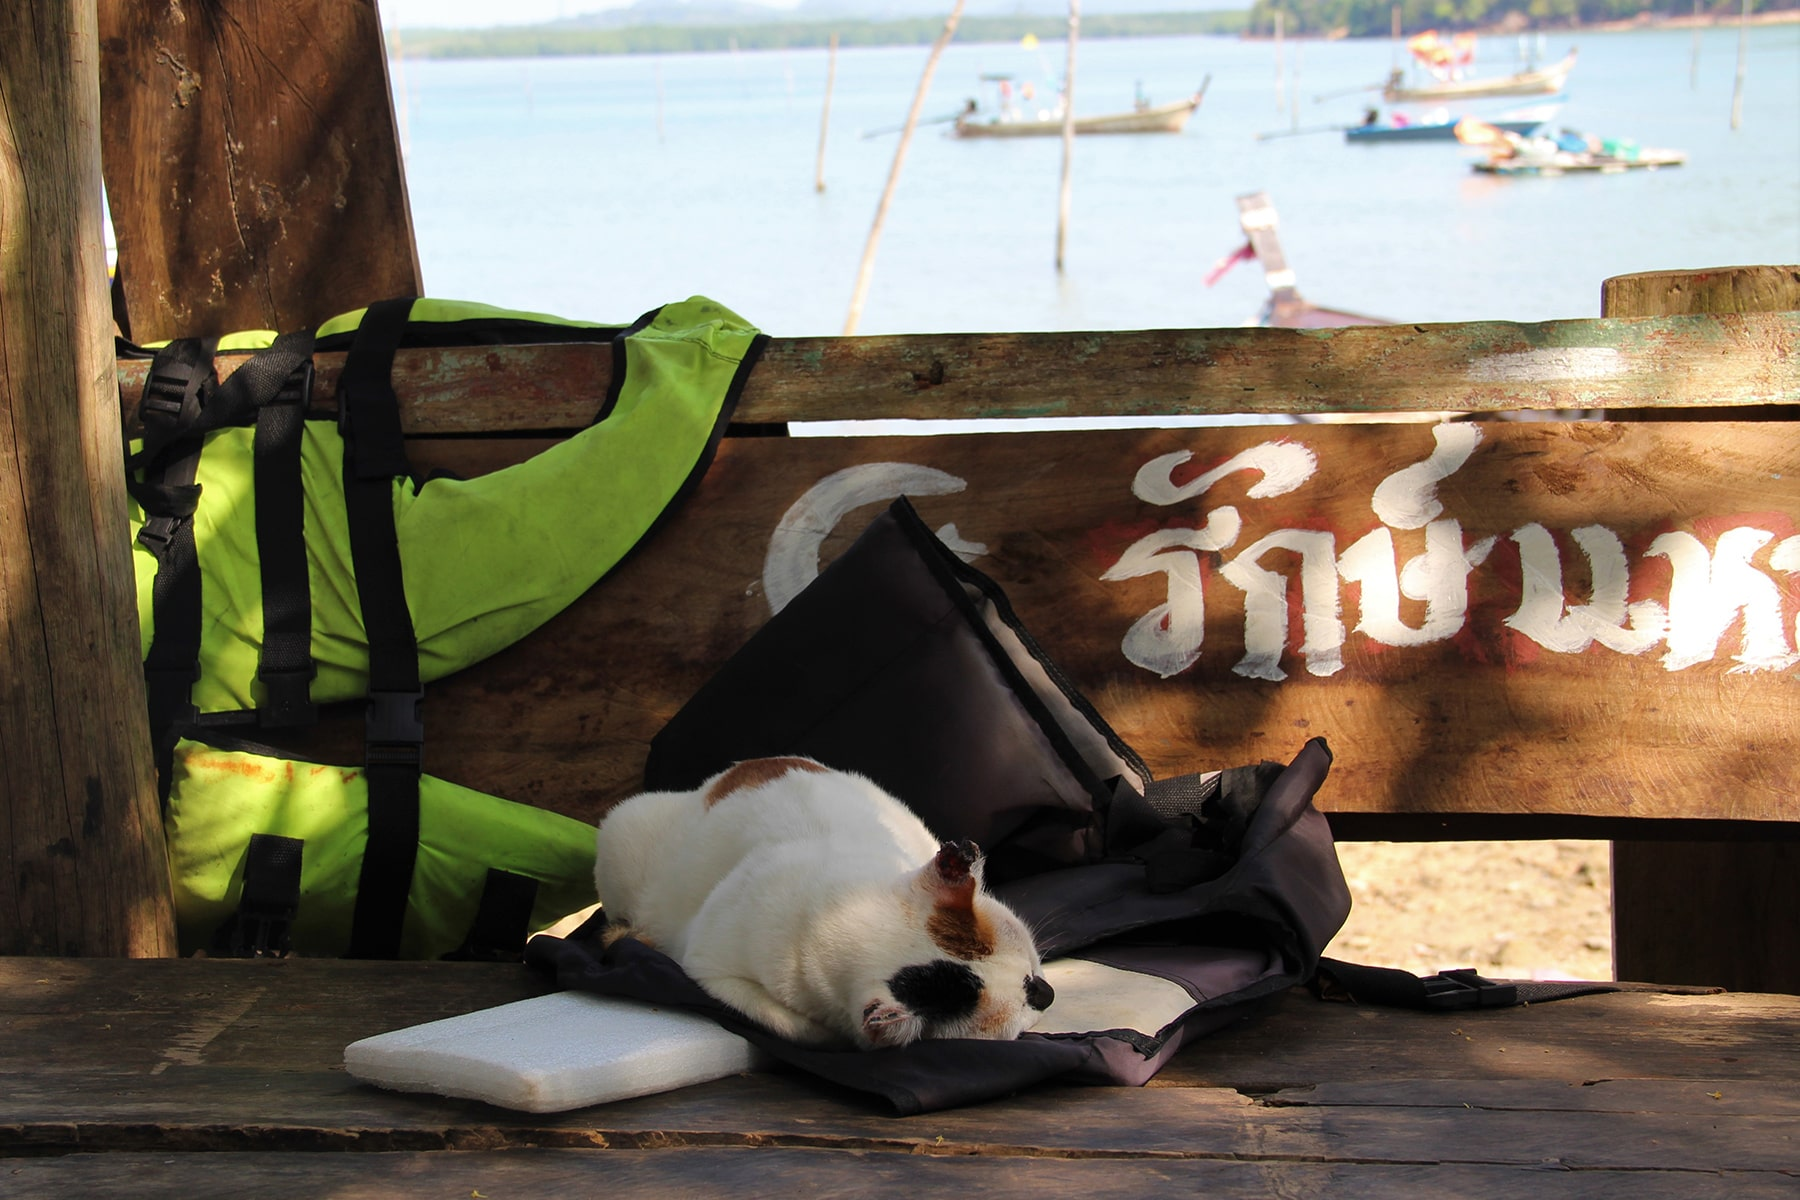 Cat sleeping on lifejackets in Koh Yao Yai